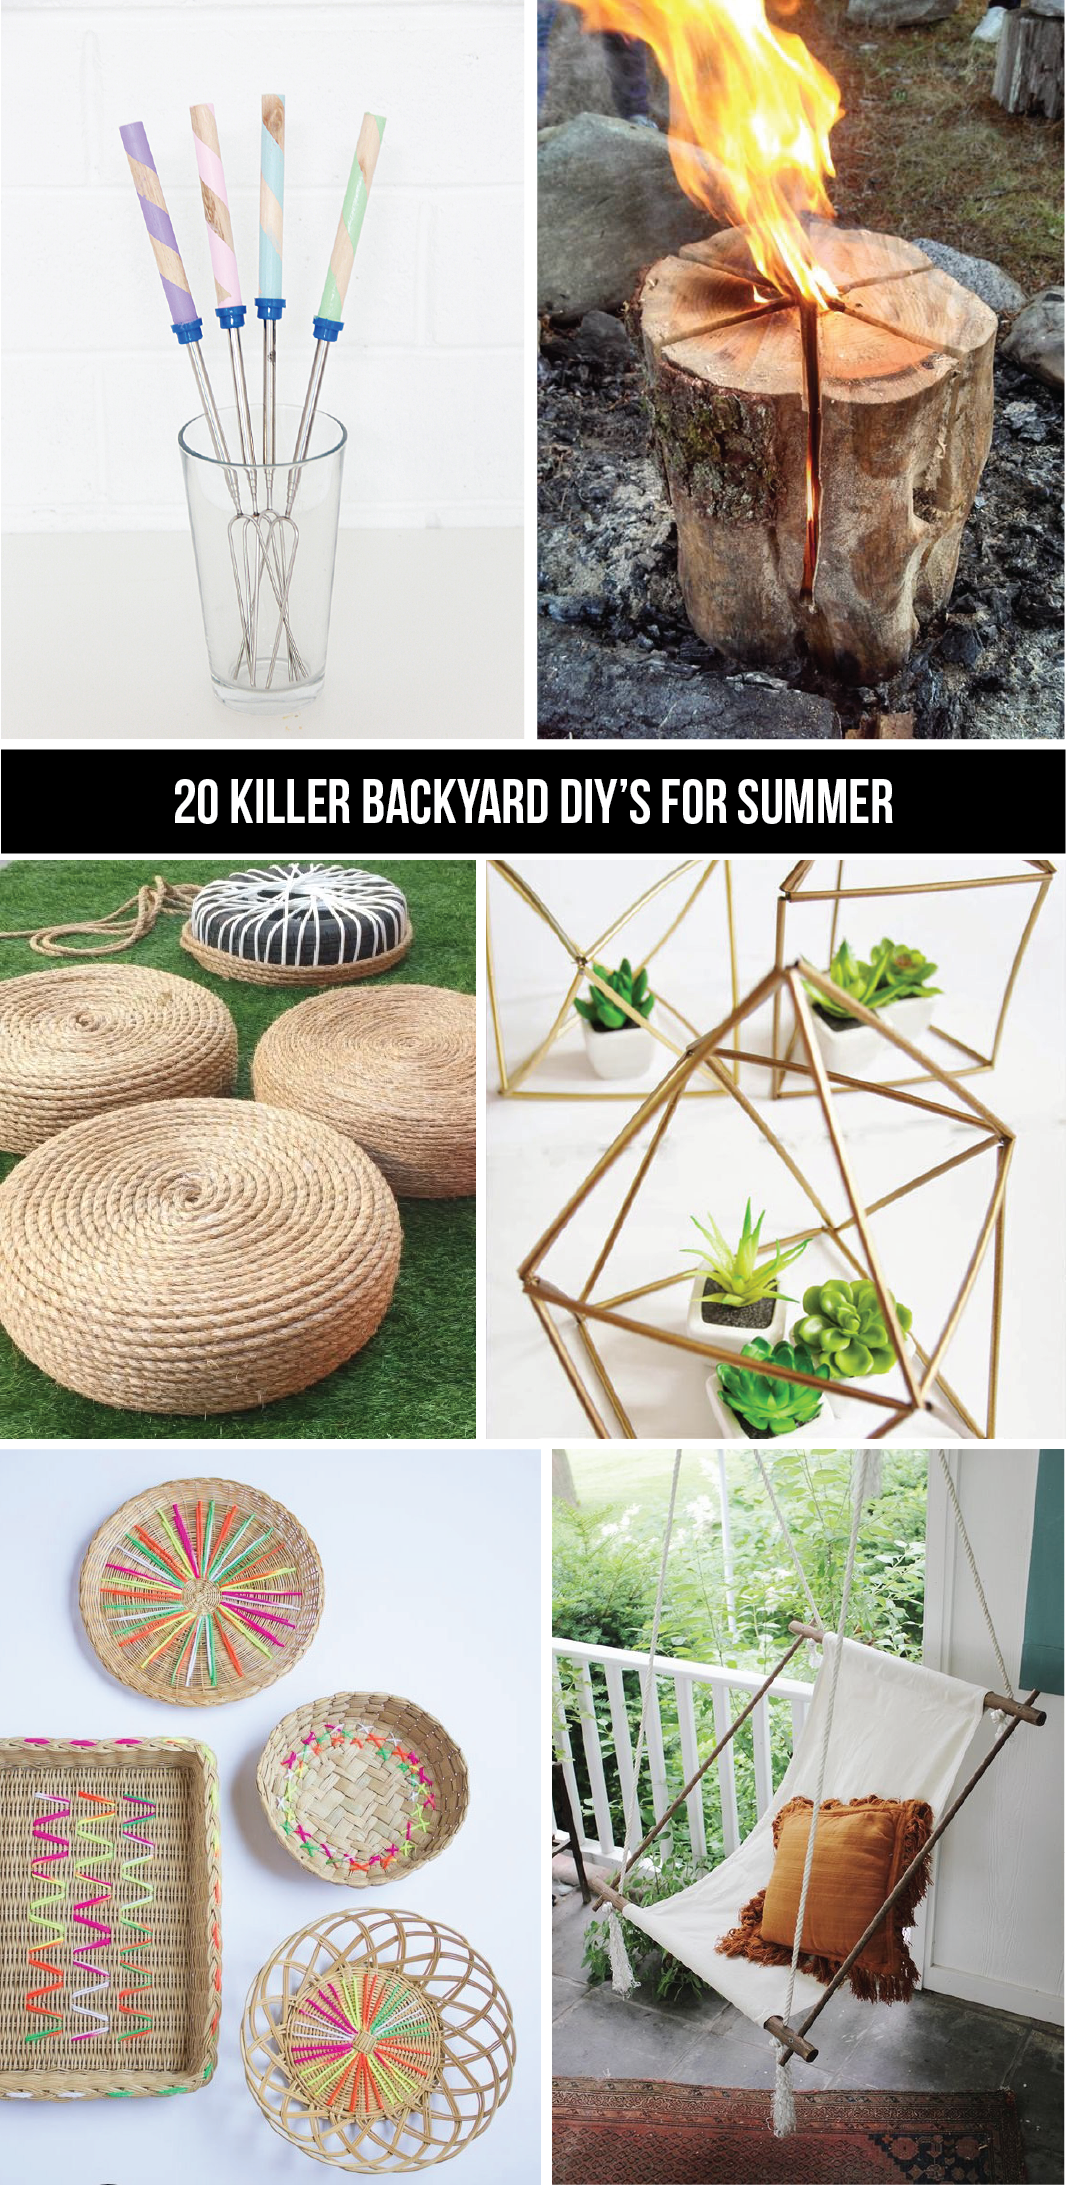 20 must try DIY backyard projects to make the most of summer!